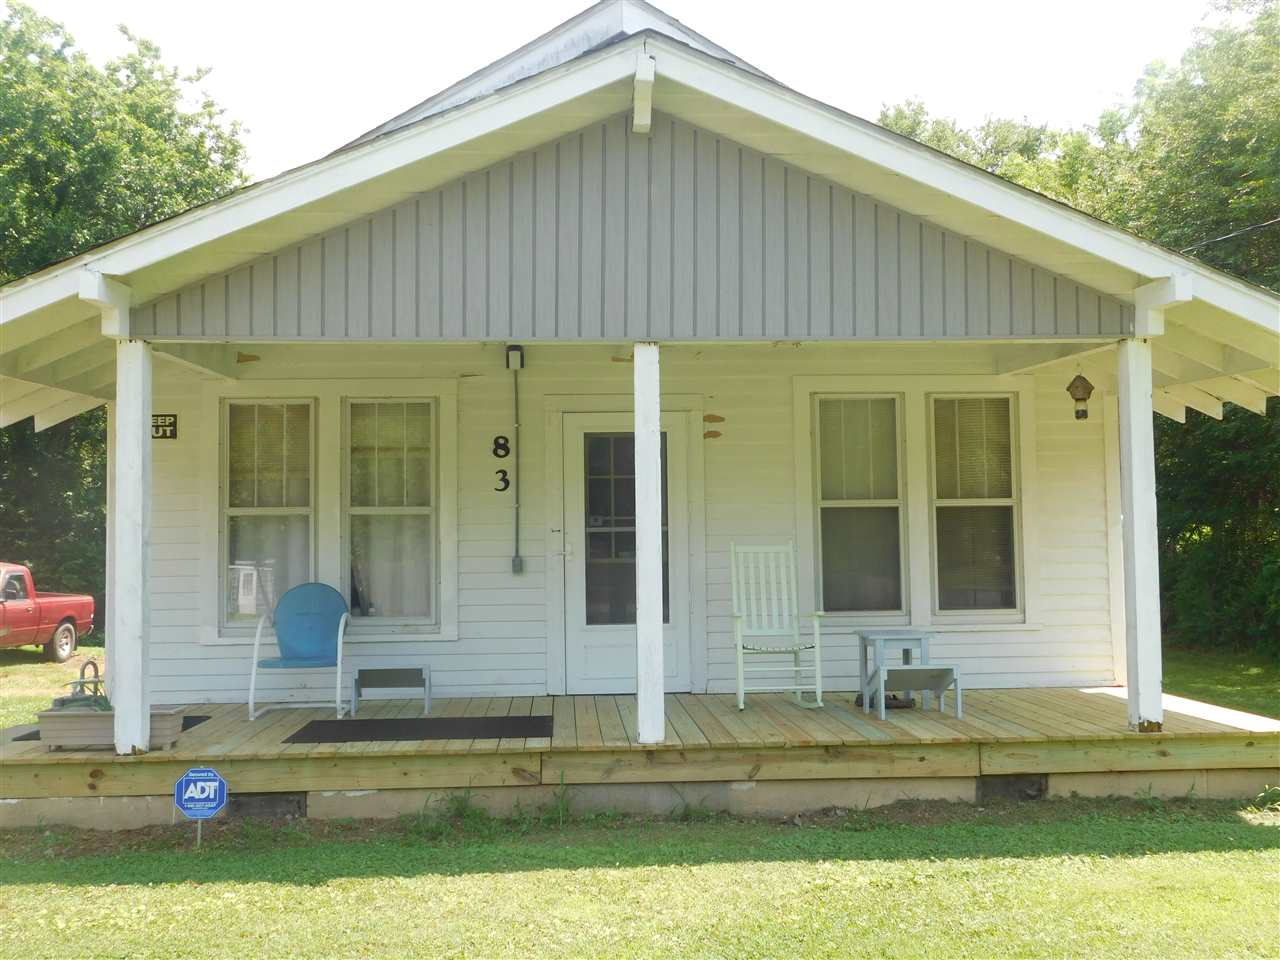 83 Carrie St,Dyersburg,Tennessee 38024,2 Bedrooms Bedrooms,1 BathroomBathrooms,Residential,83 Carrie St,183264